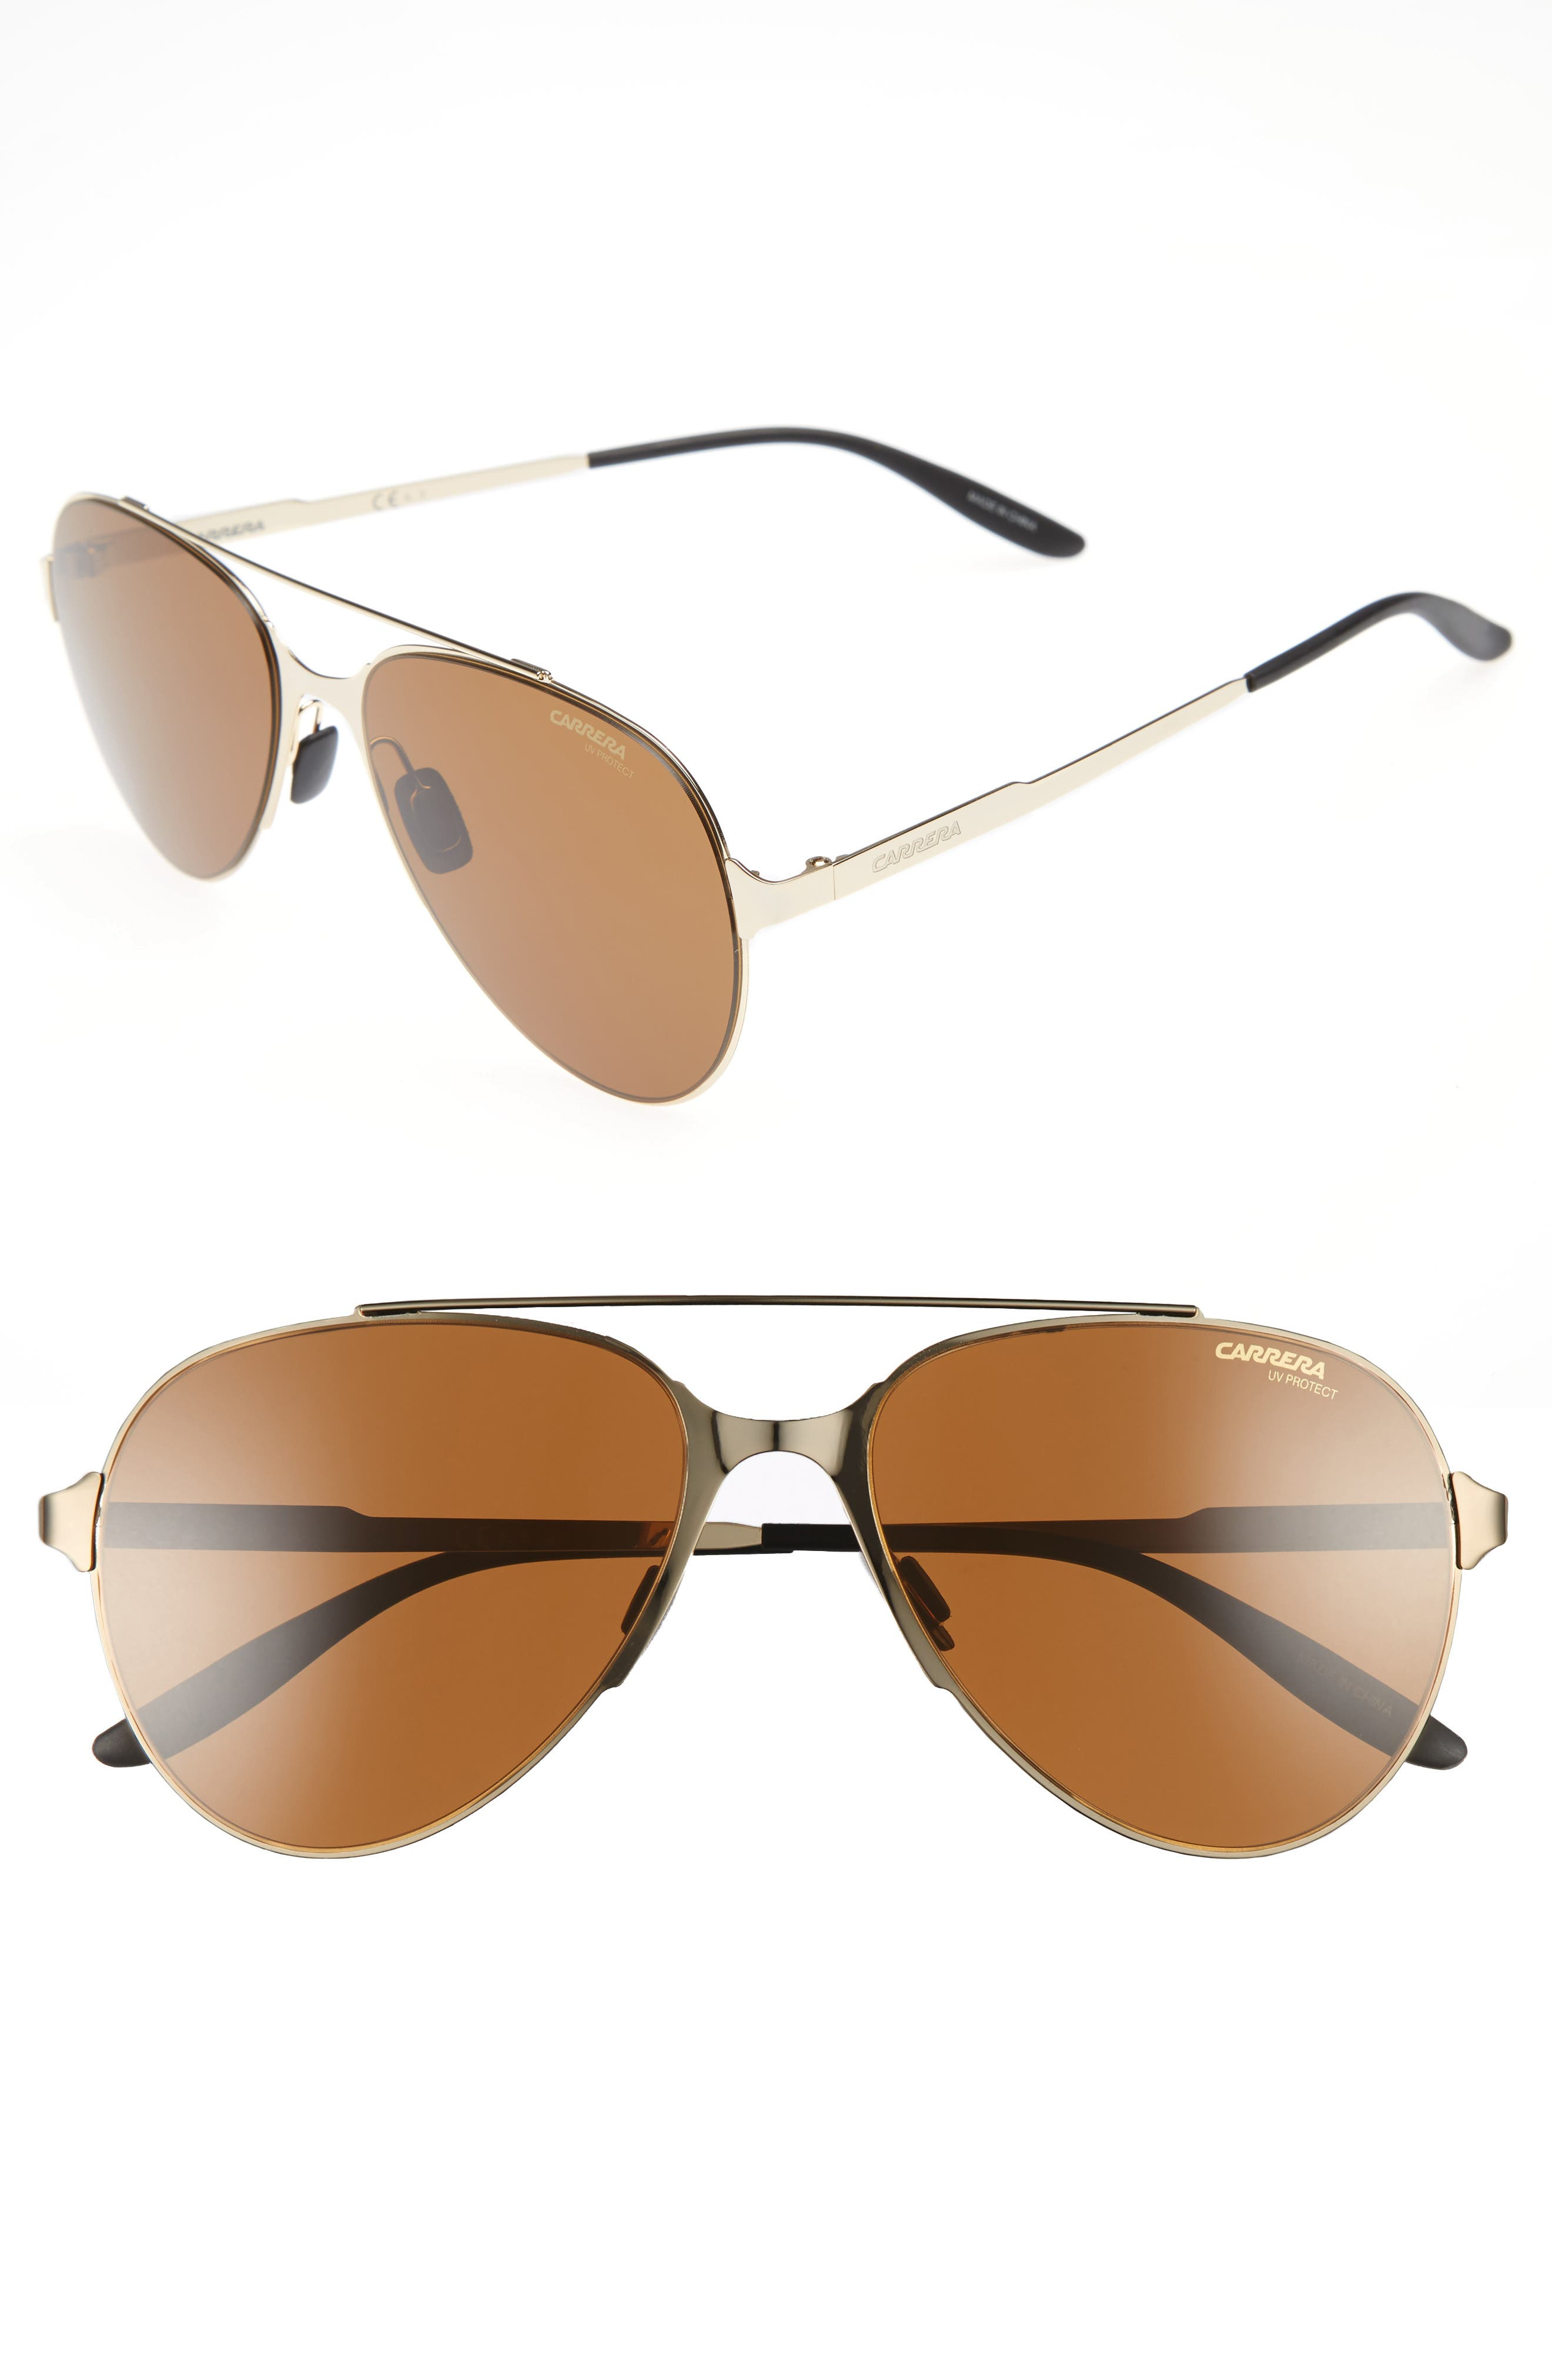 55mm Aviator Sunglasses,                         Main,                         color, 714